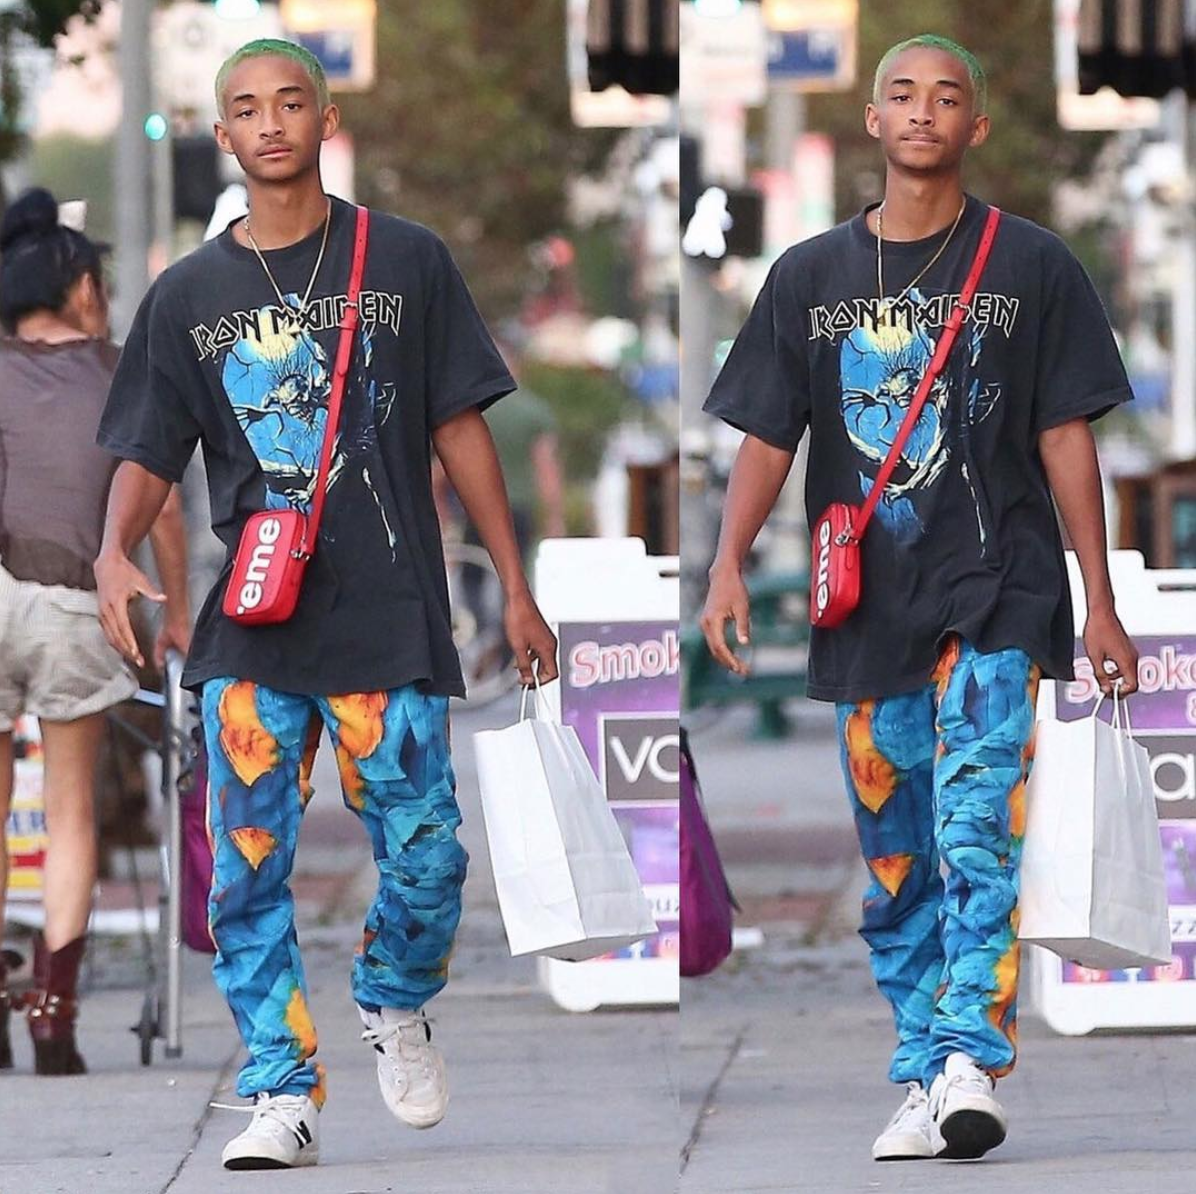 SPOTTED: Jaden Smith In Supreme x Louis Vuitton, G Star Jeans + New Balance Sneakers